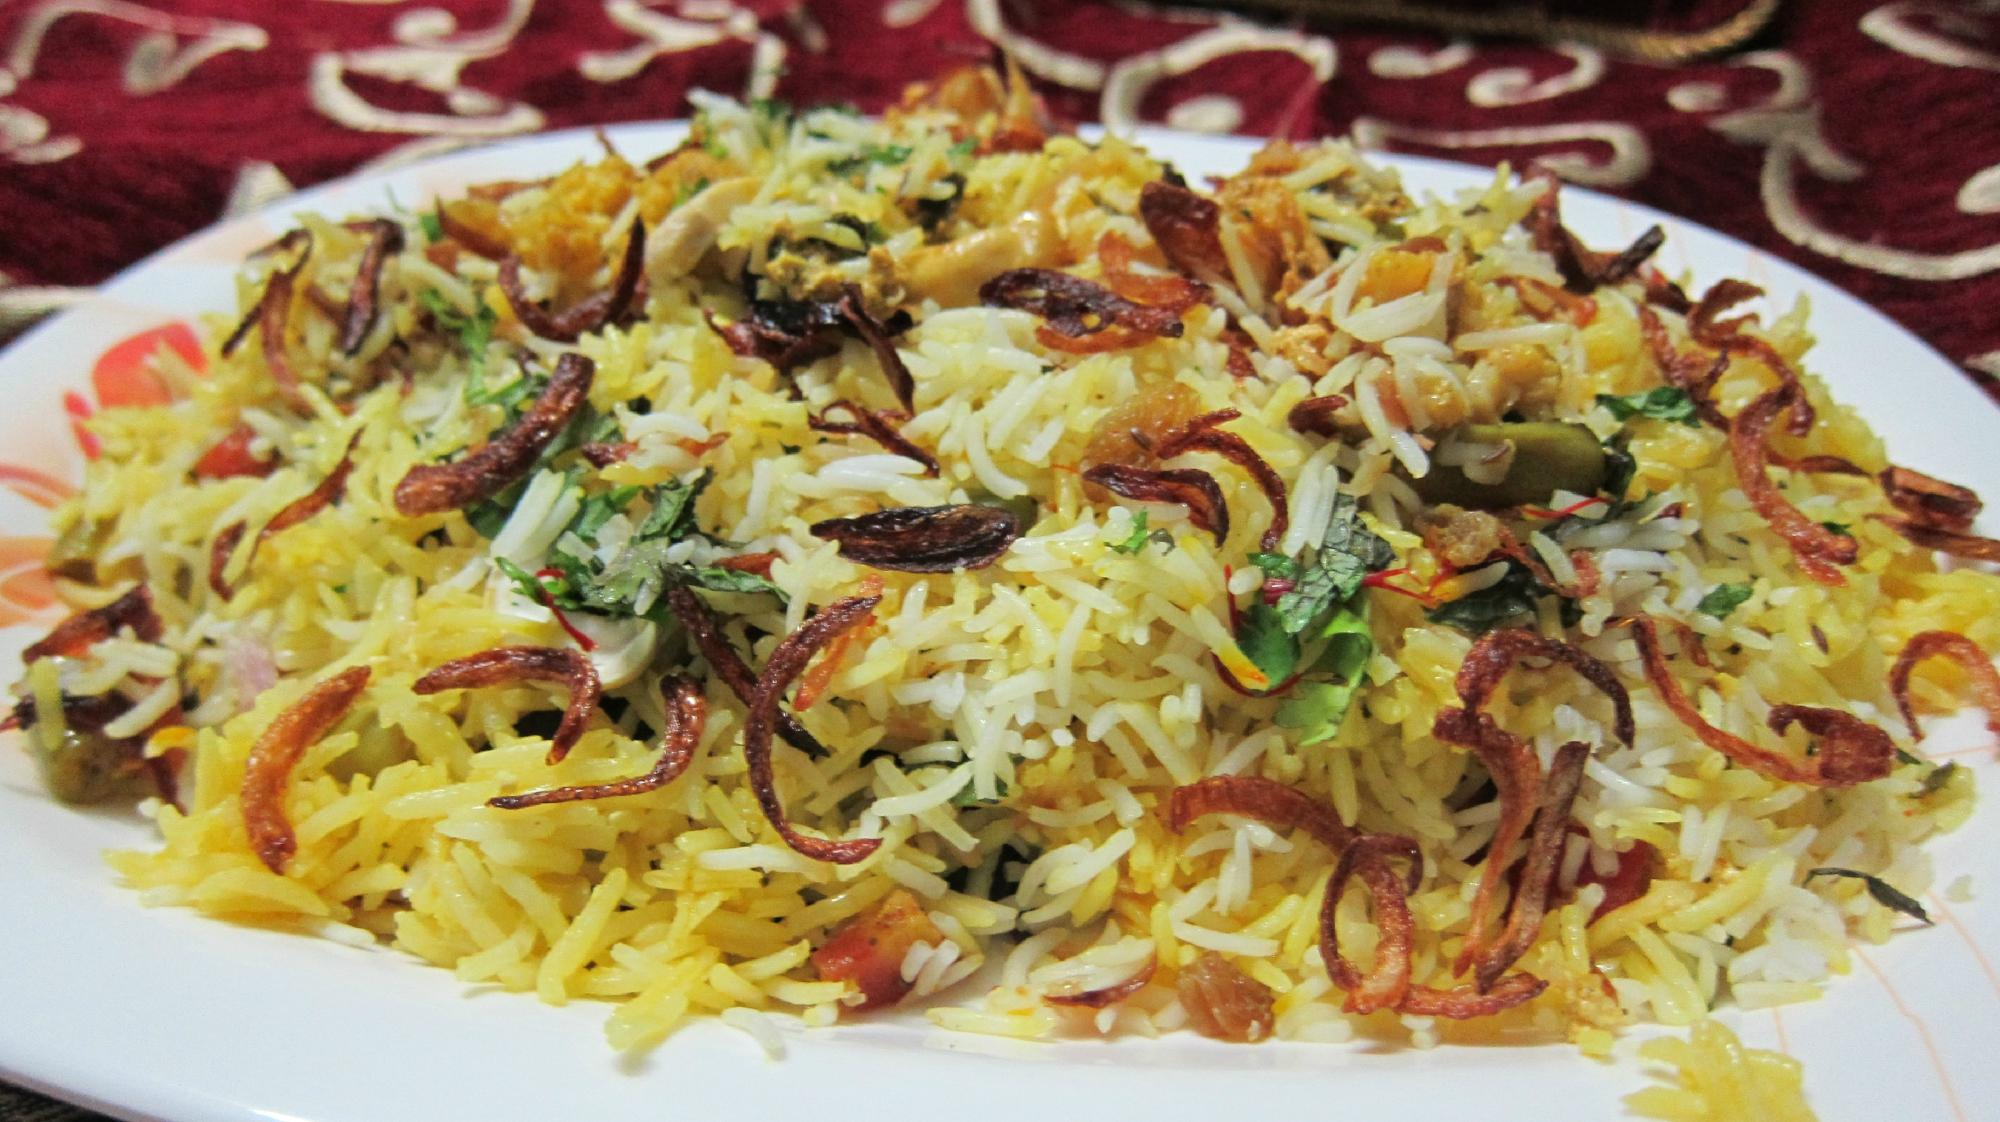 Biriyani Pilaf- Top Dish To Try in Bhopal to Satisfy Your Food Cravings